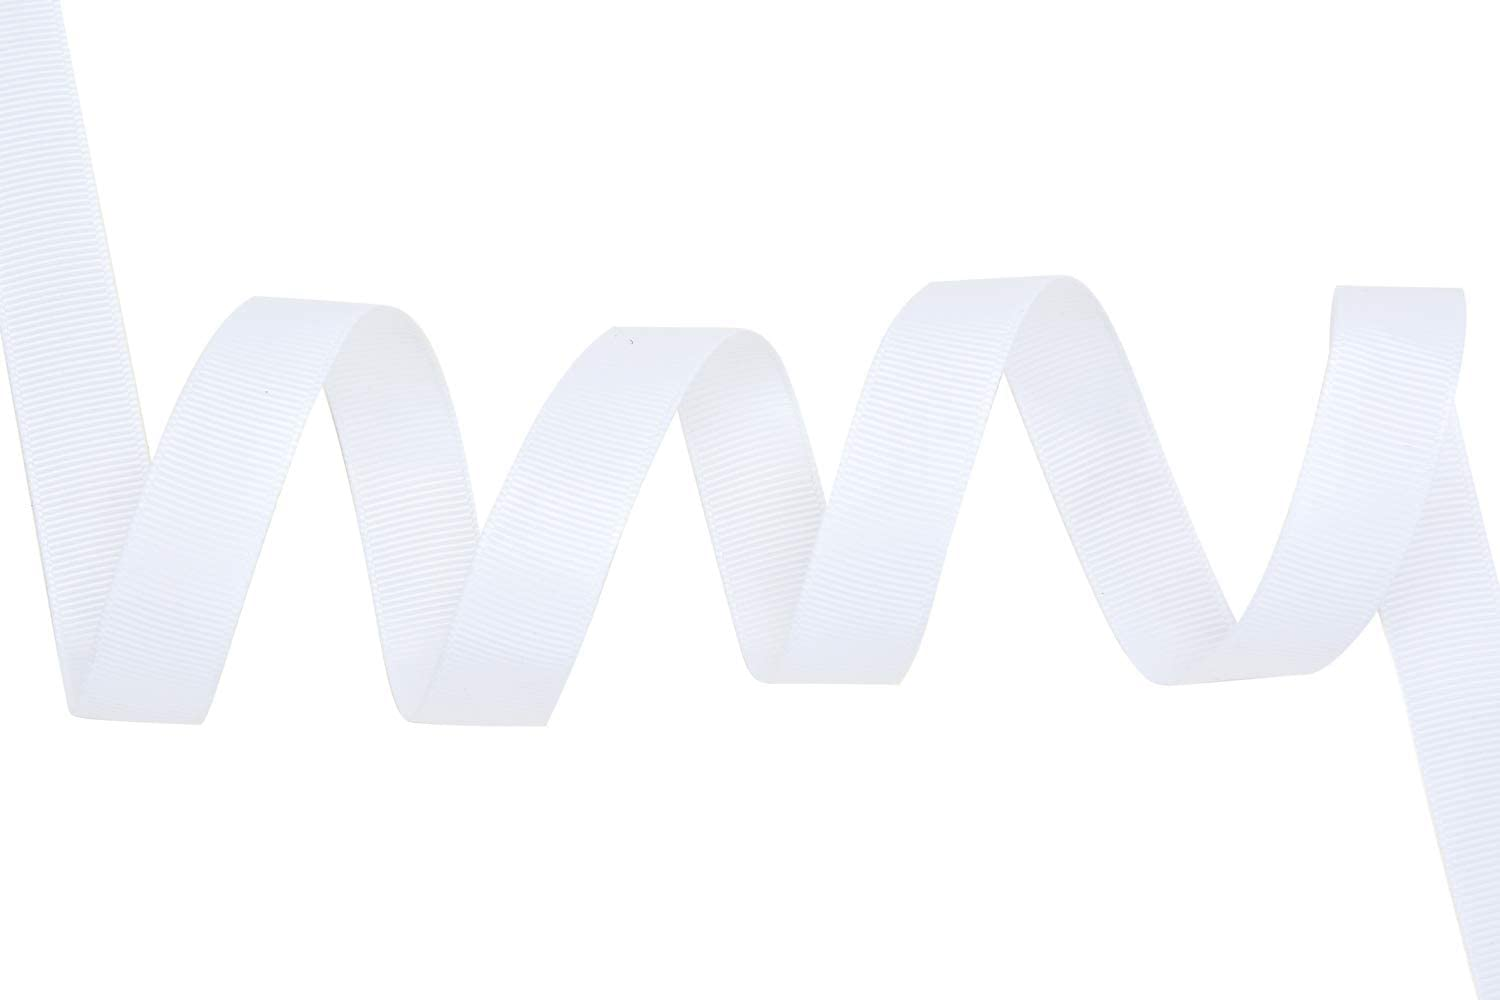 White YAMA 5//8 inch Solid Grosgrain Ribbon Roll 25 Yards for Gift Wrapping Ribbons